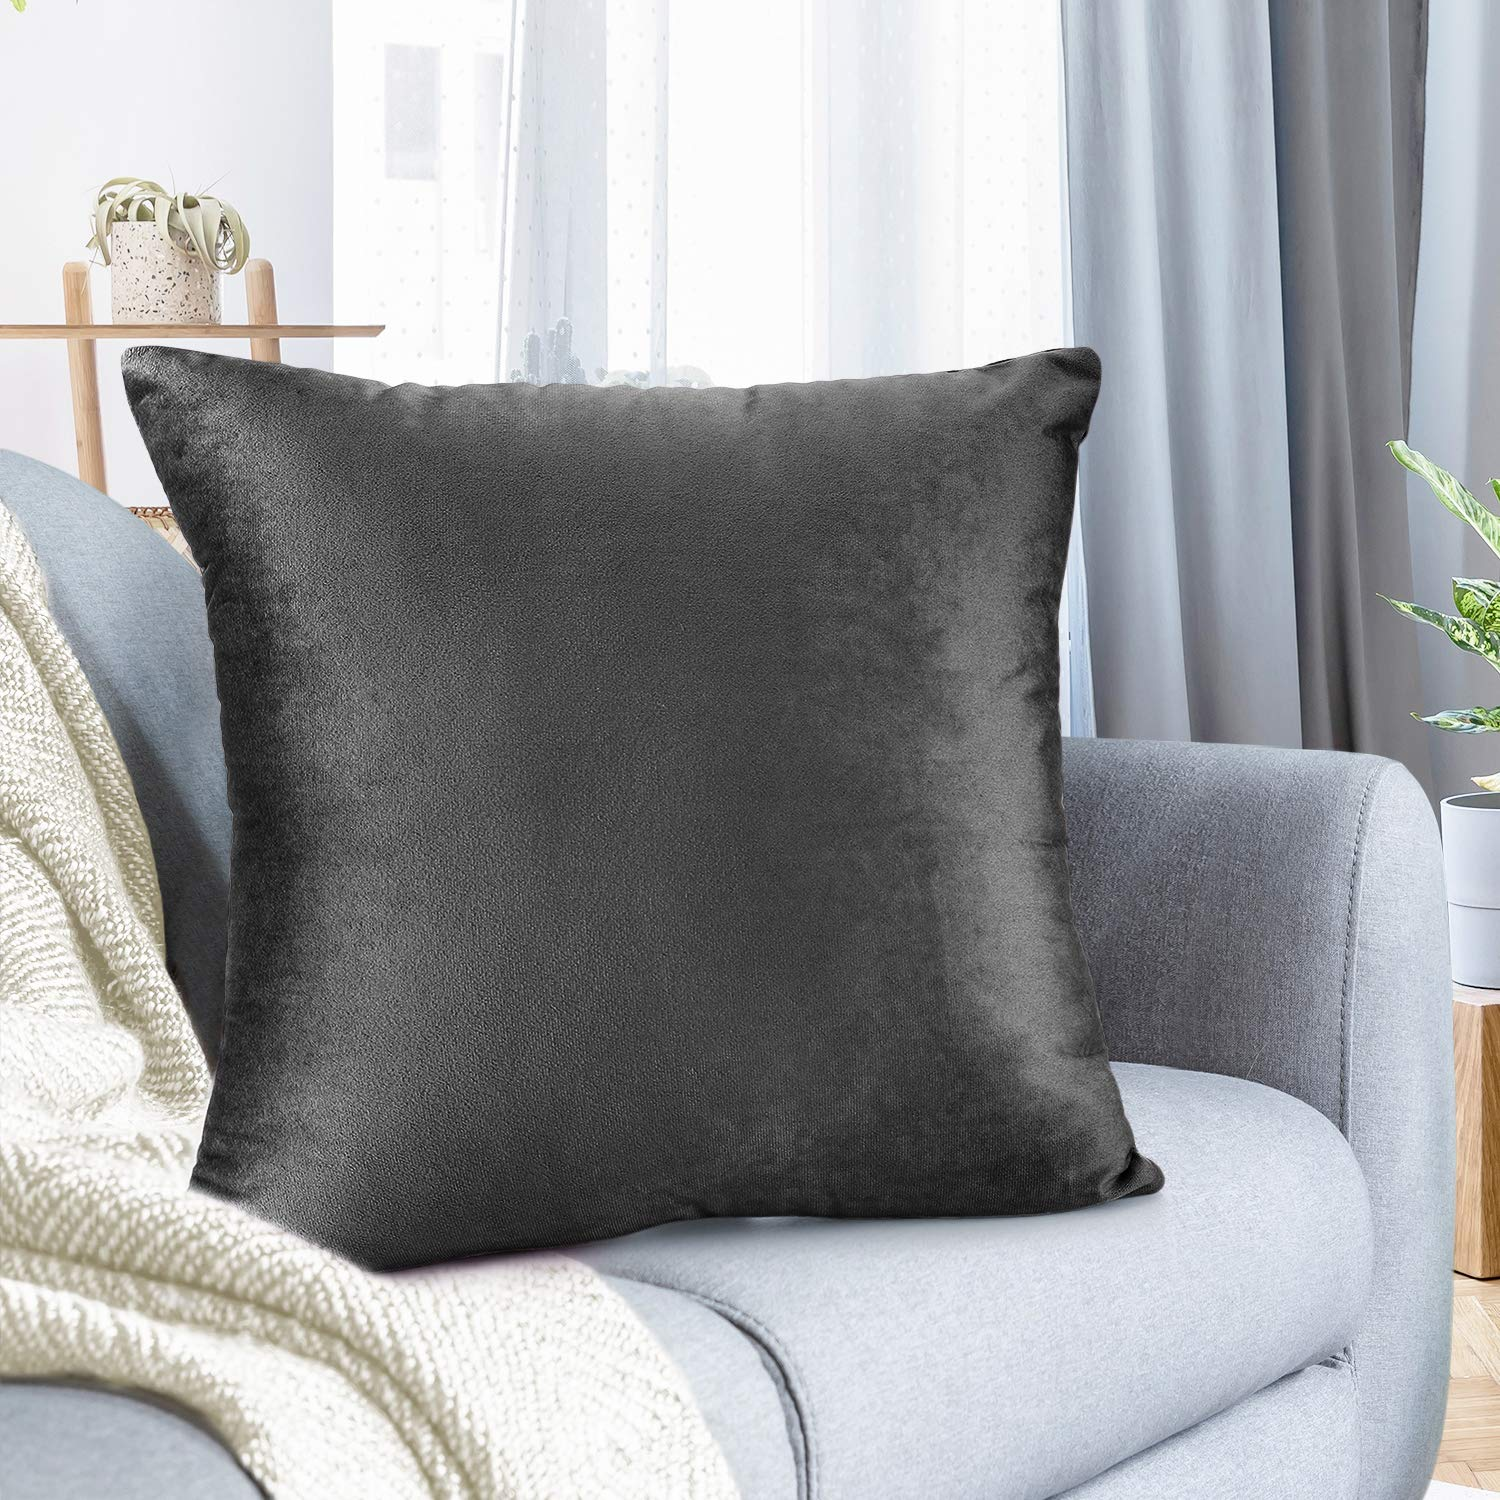 """Nestl Bedding Throw Pillow Cover 16"""" x 16"""" Soft Square Decorative Throw Pillow Covers Cozy Velvet Cushion Case for Sofa Couch Bedroom - Charcoal Stone Gray"""